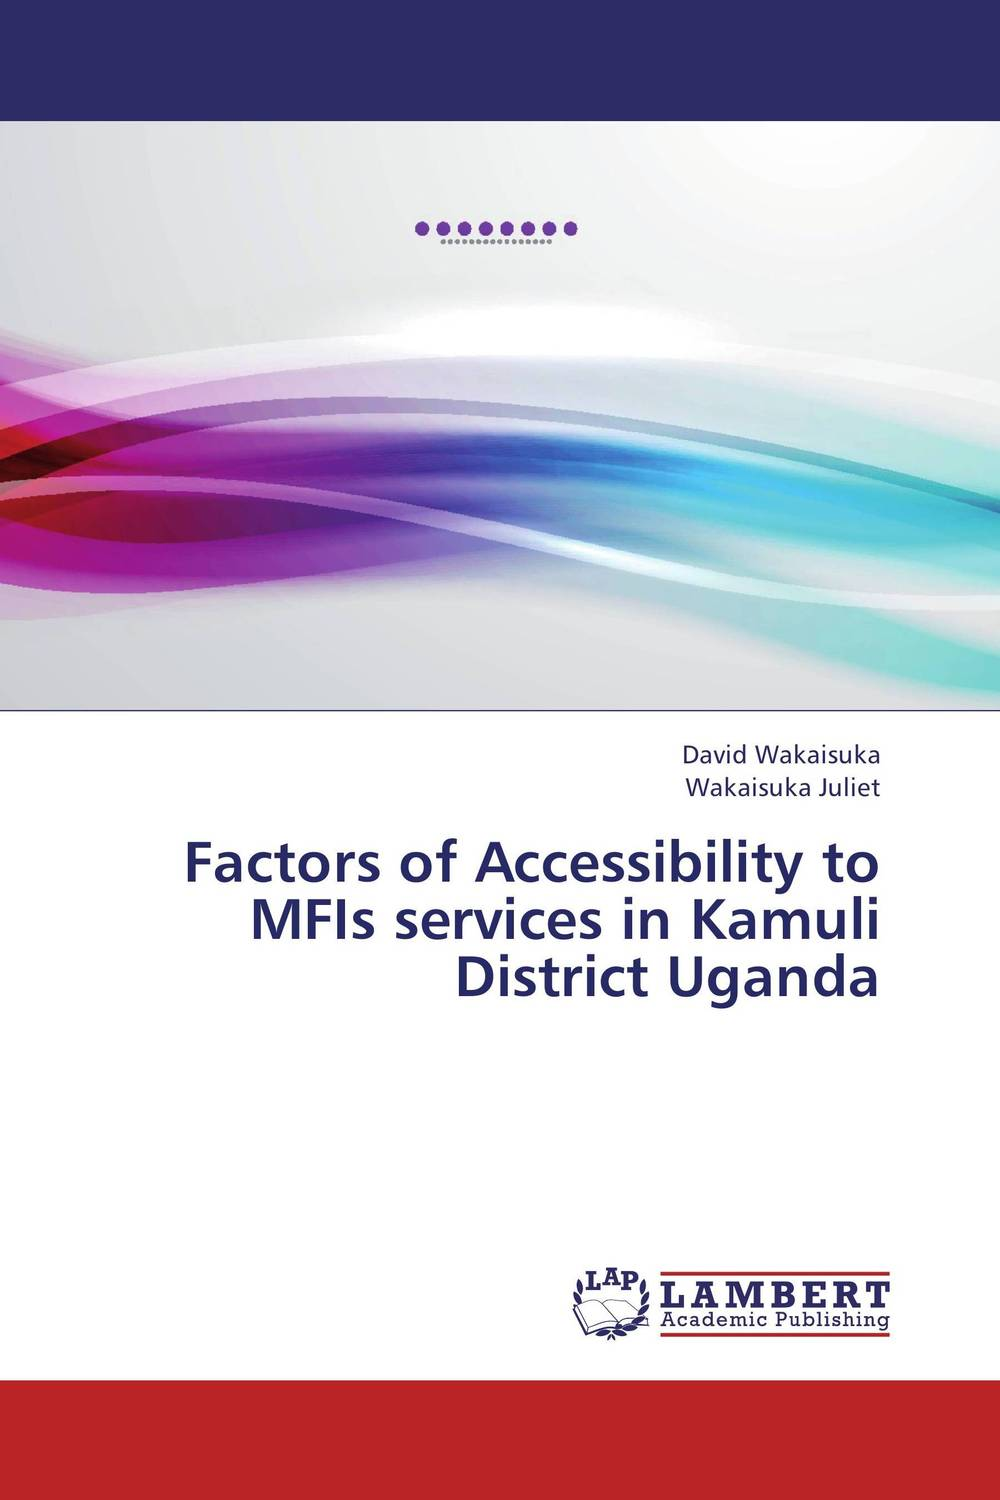 Factors of Accessibility to MFIs services in Kamuli District Uganda arvinder pal singh batra jeewandeep kaur and anil kumar pandey factors associated with breast cancer in amritsar region